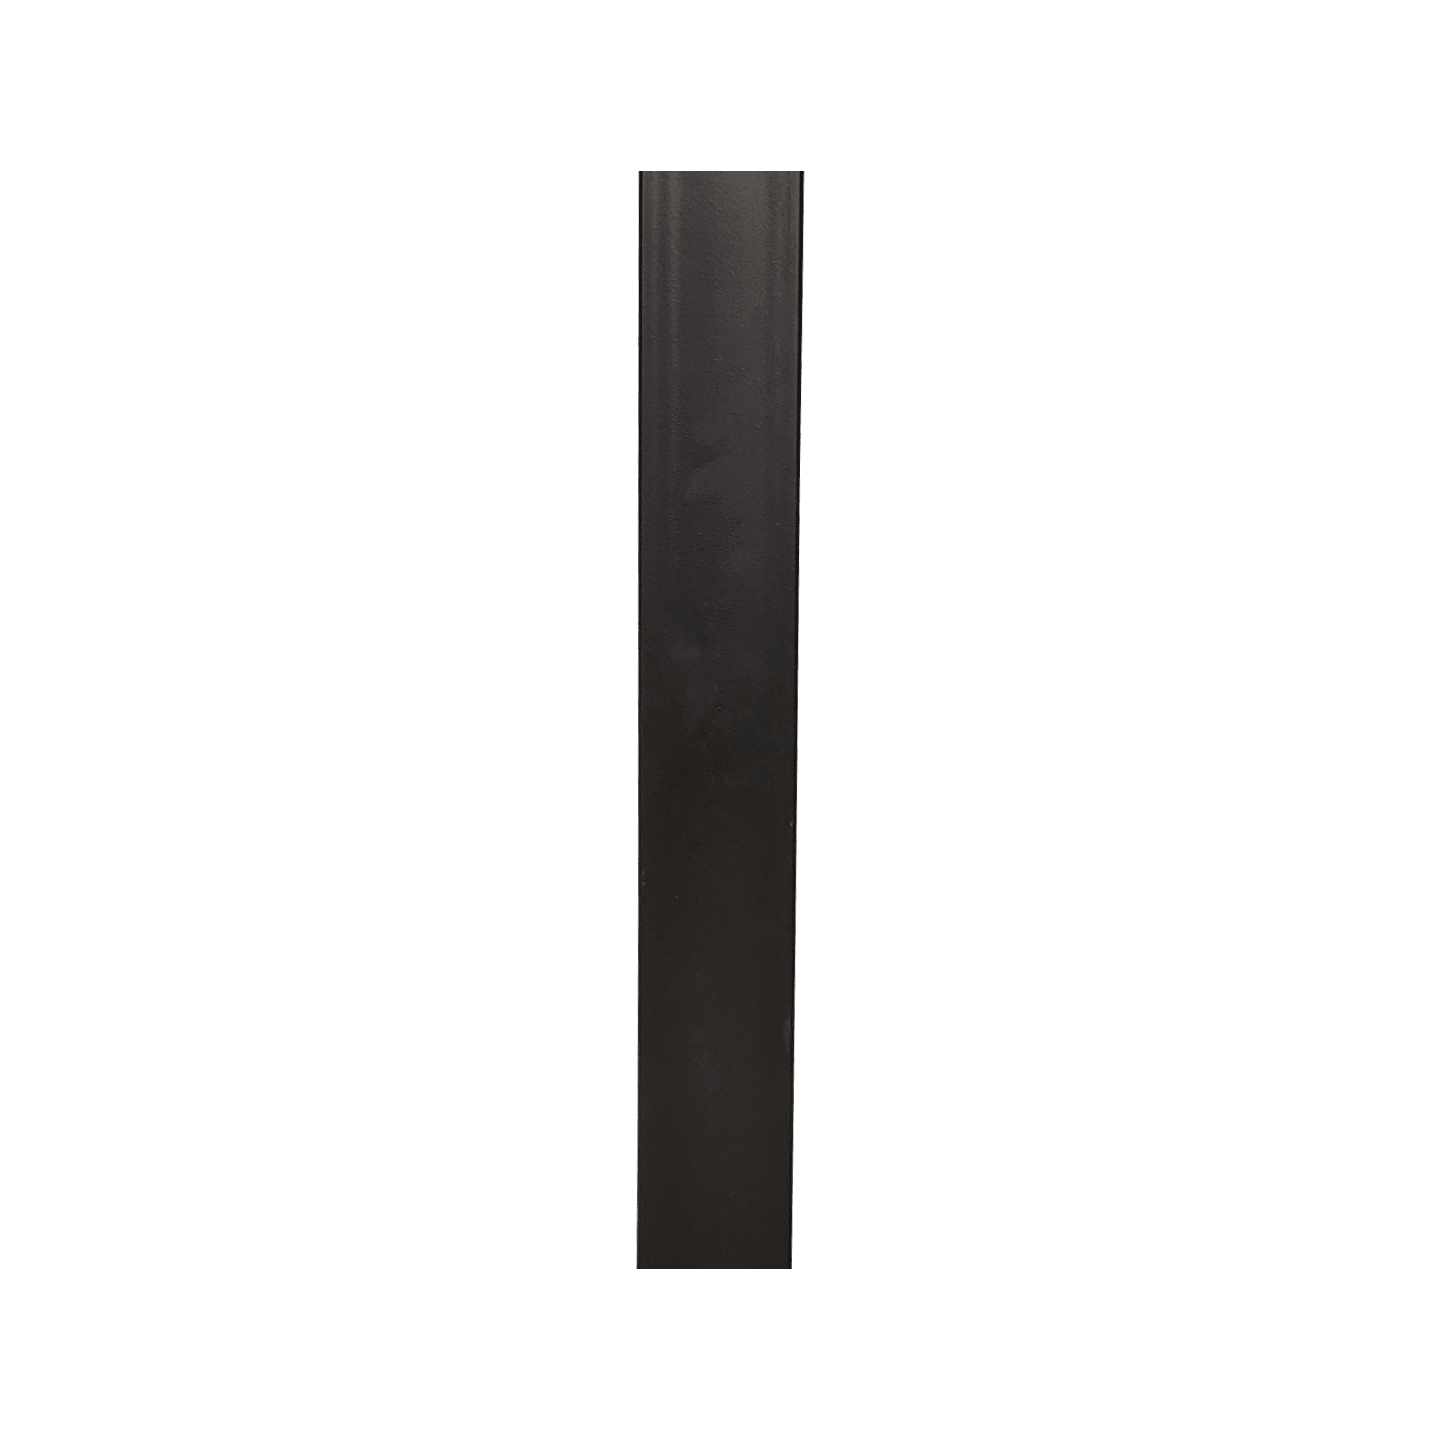 PART Calais Square Tube - 4100 - Black